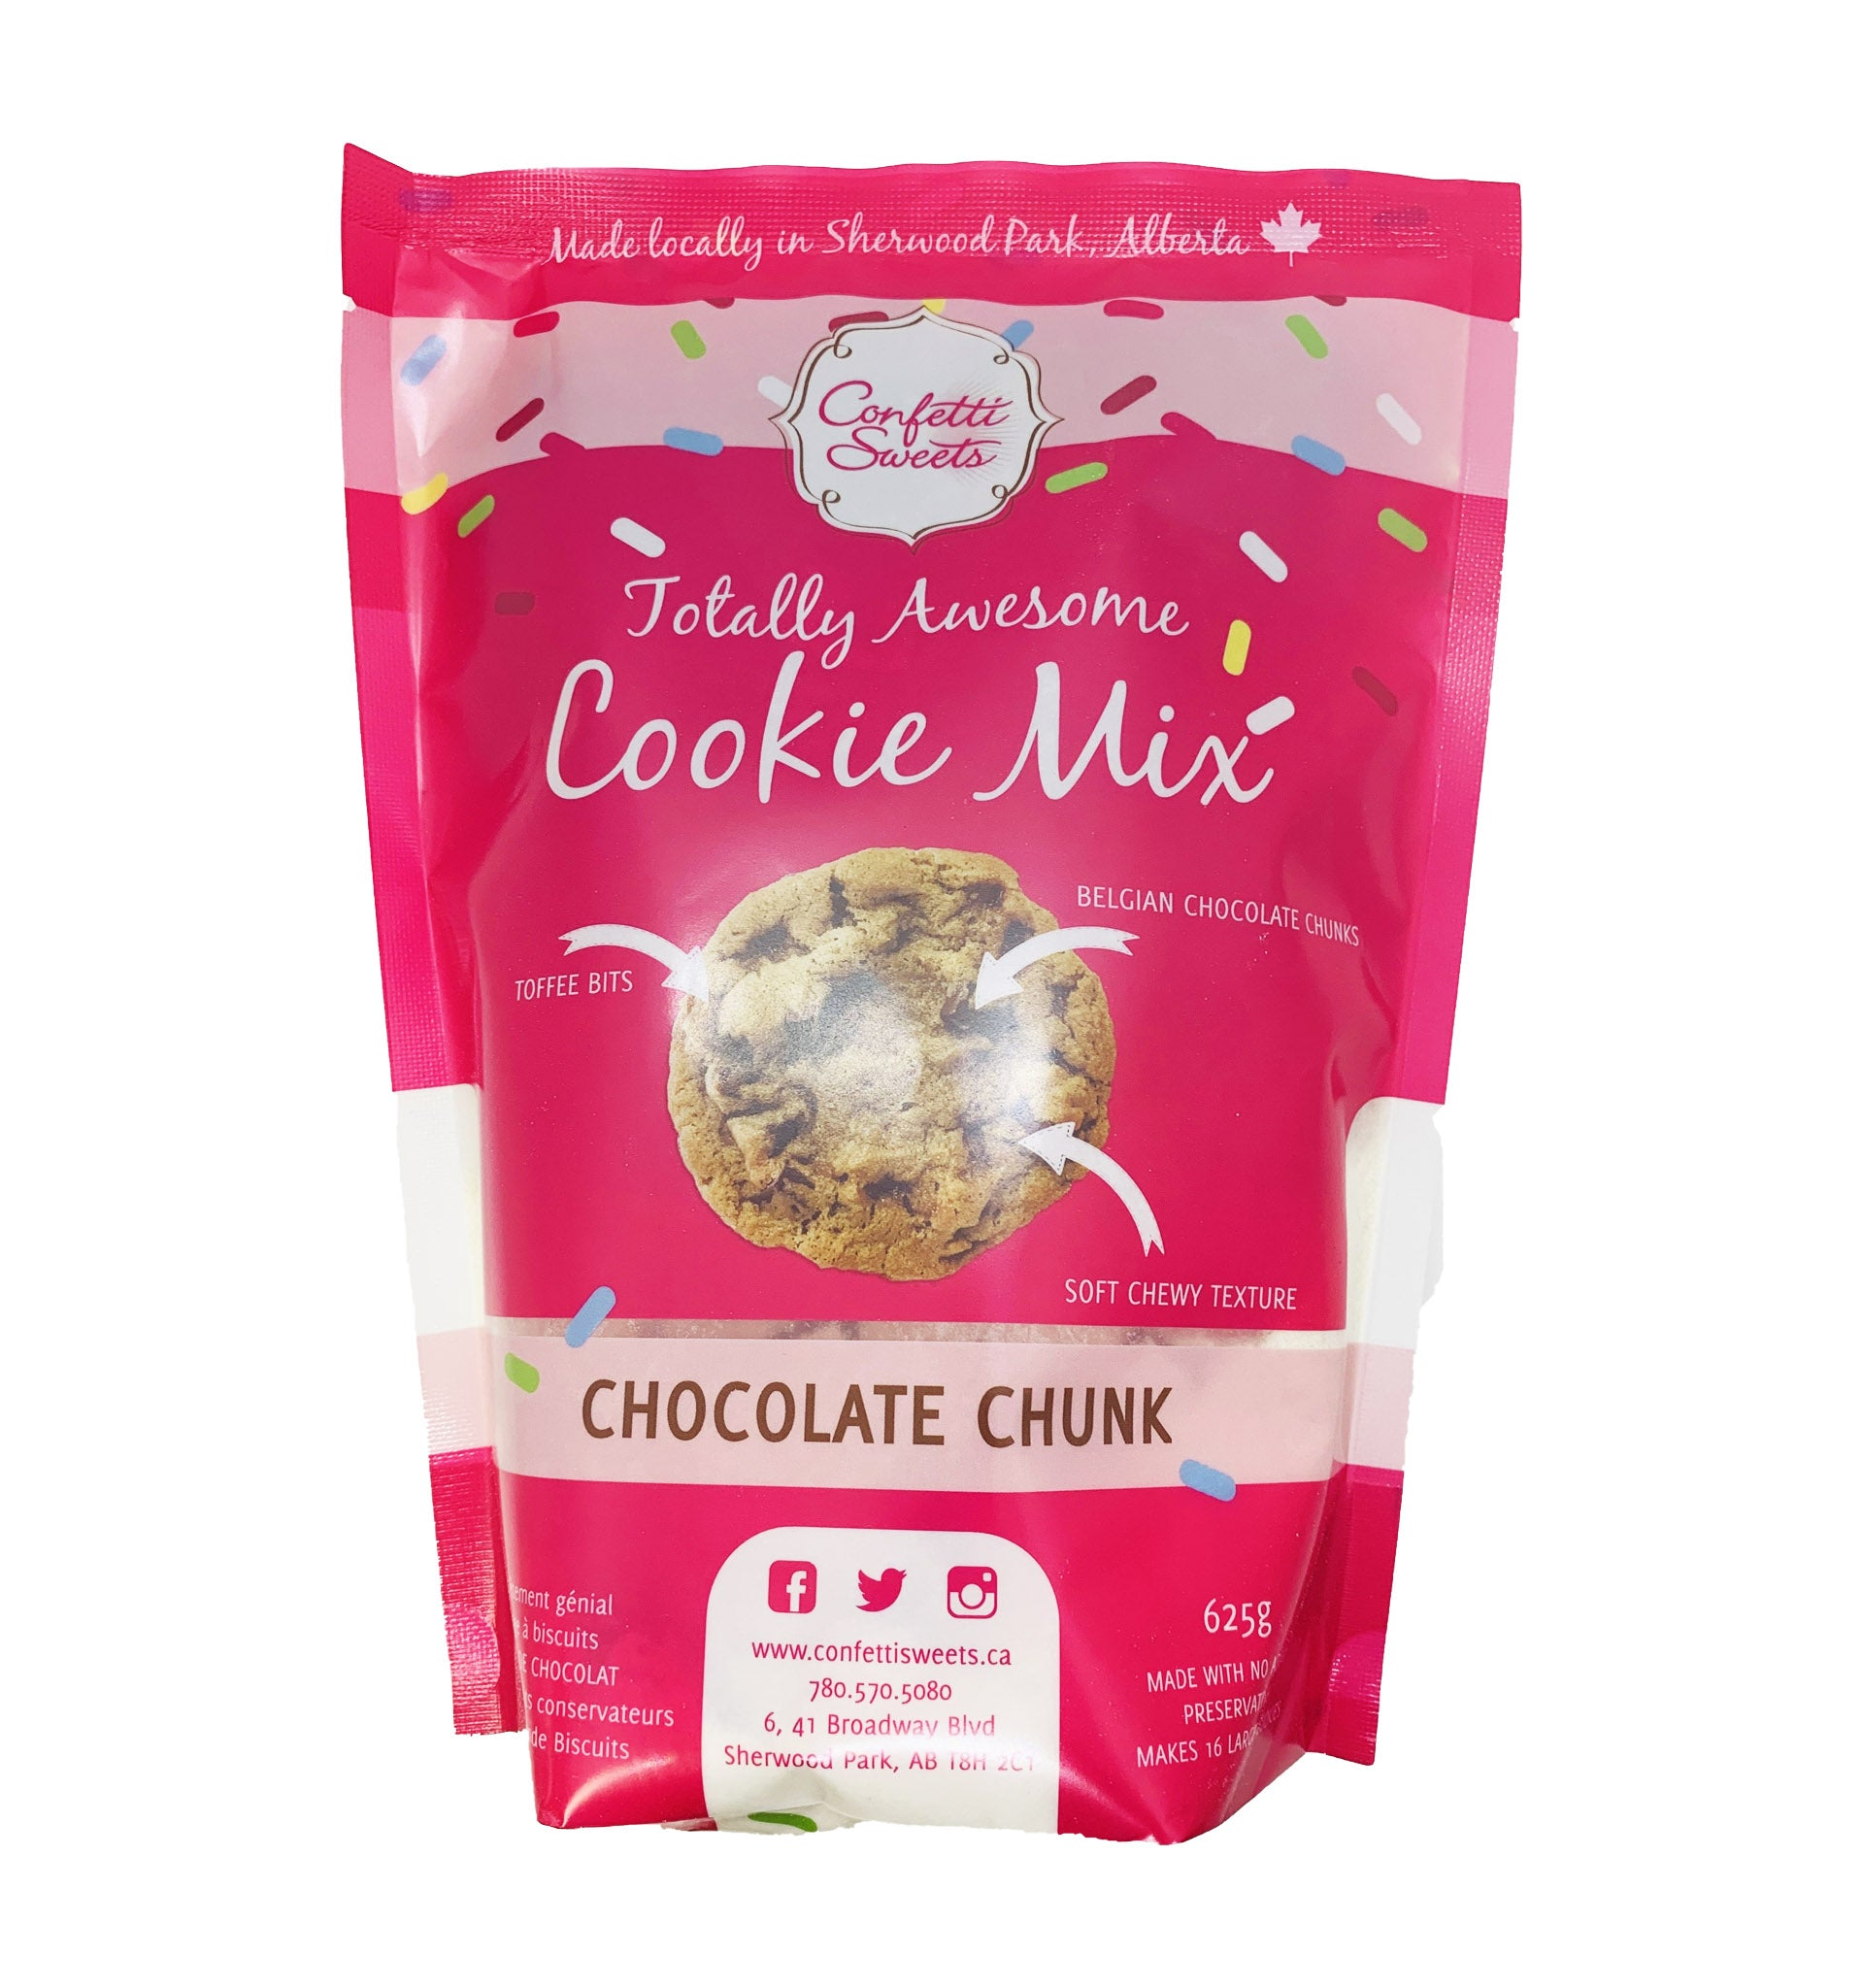 Image of Cookie mix, Chocolate Chunk. (bakes 16 large cookies)